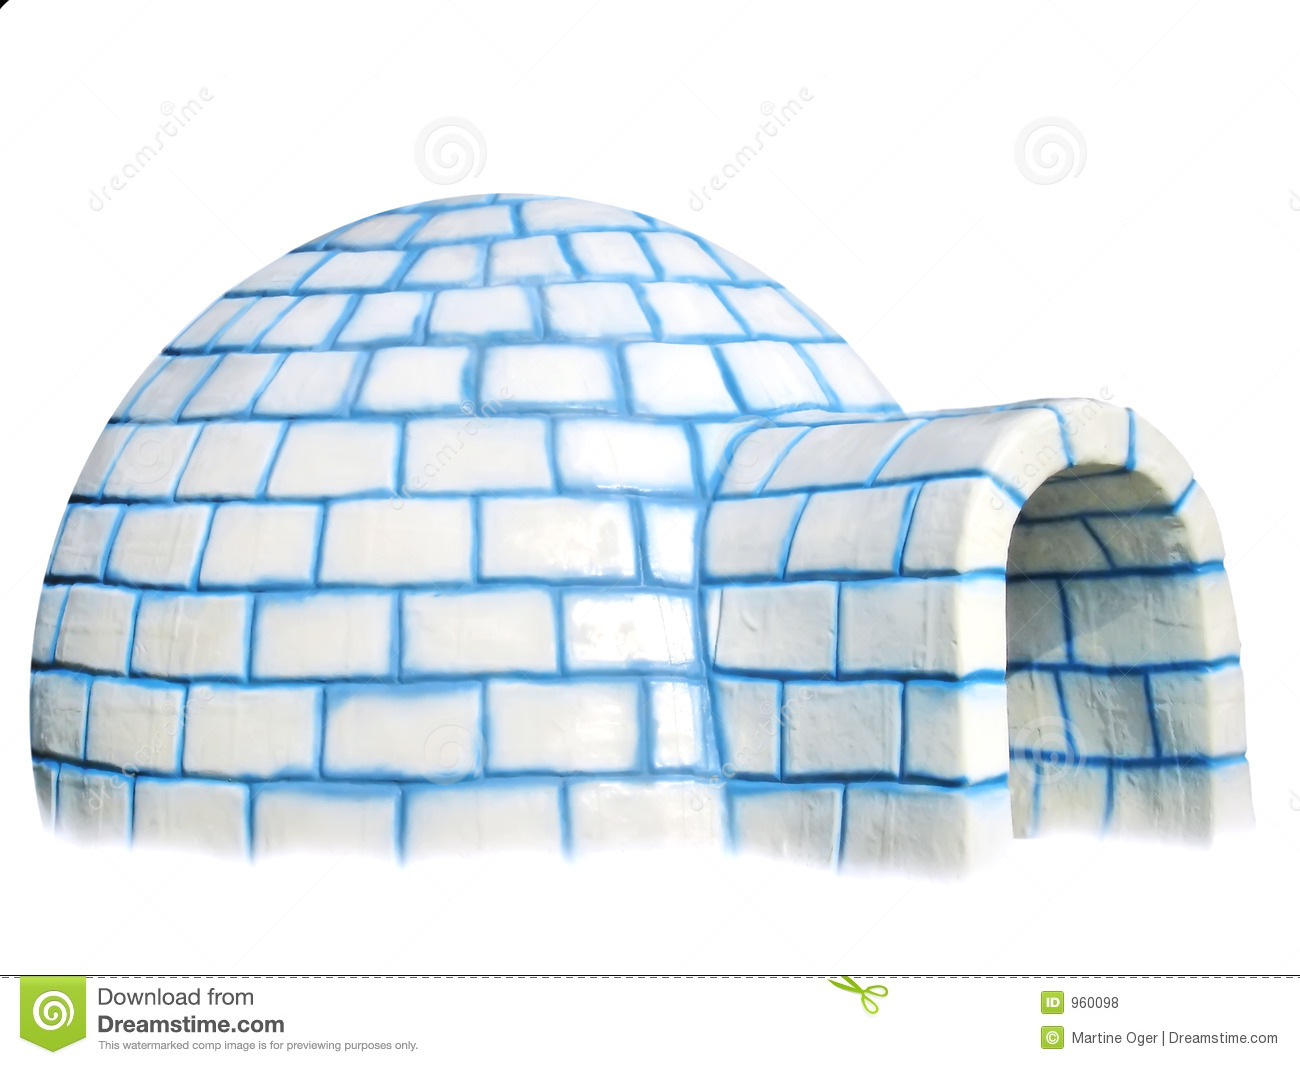 igloo isolated royalty free stock photos image 960098 clip art sounds free downloads microsoft clip art sounds for powerpoint